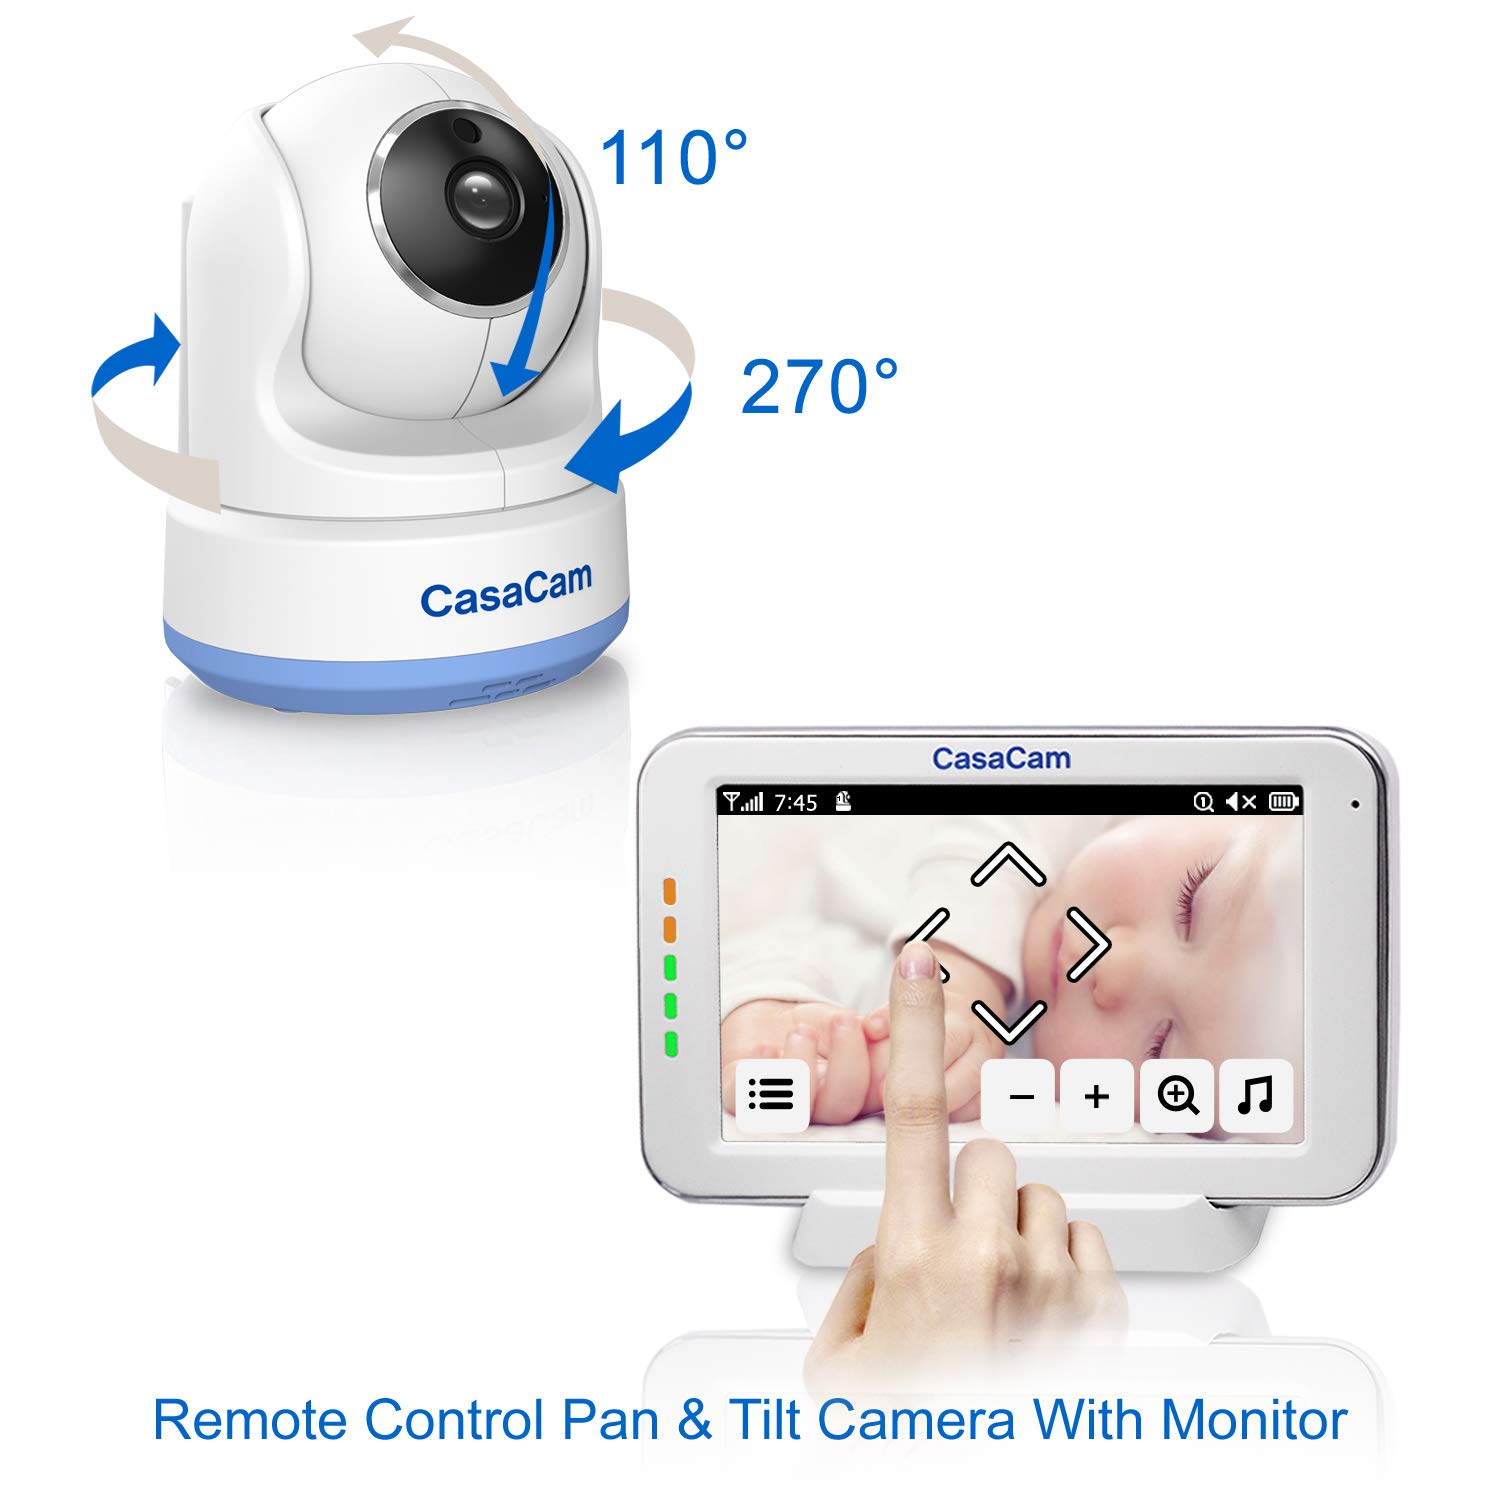 CasaCam BM200 Video Baby Monitor with 5'' Touchscreen and HD Pan & Tilt Camera, Two Way Audio, Lullabies, Nightlight, Automatic Night Vision and Temperature Monitoring Capability (1-cam kit) by CasaCam (Image #3)